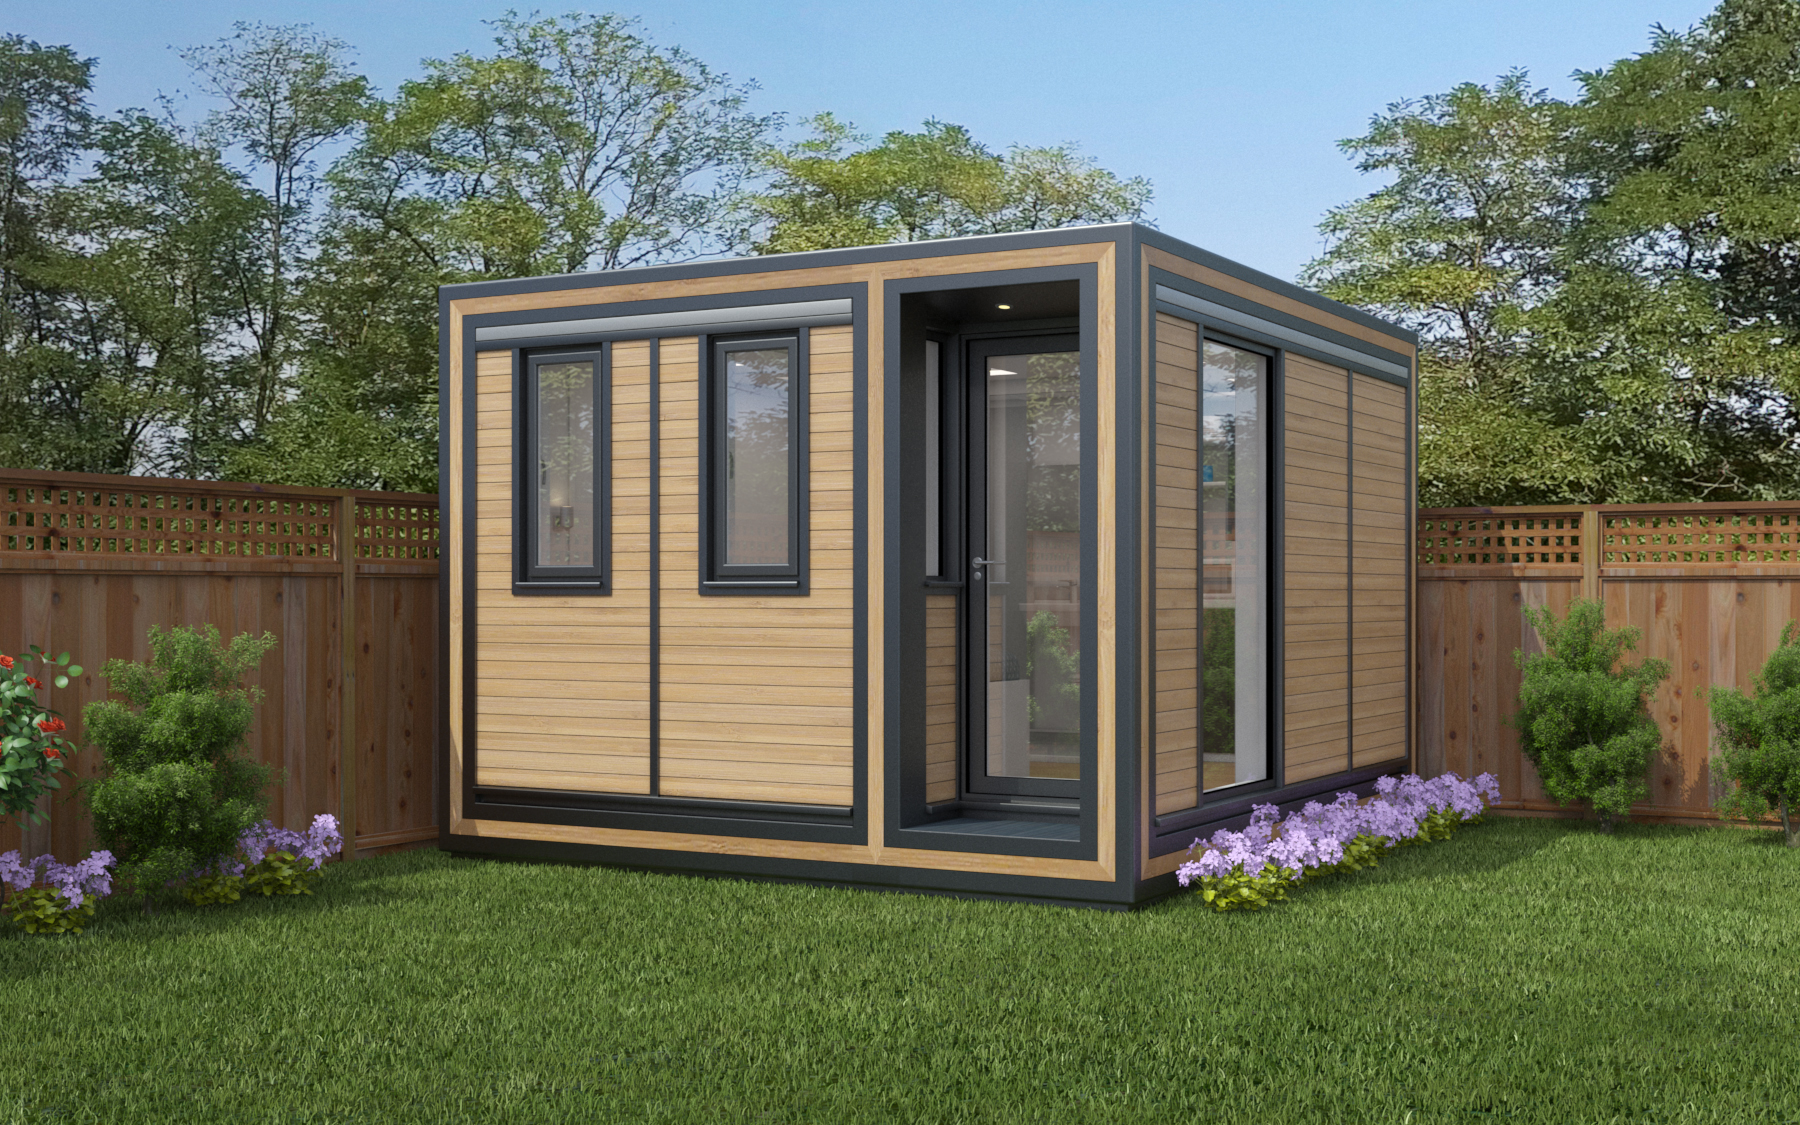 ZEDBOX 335  (3 x 3.5)  Internal Size: 3188 x 3791  External Size: 3658 x 4261  Bed Options: Single or Double  Kitchen Options: Micro Kitchen or Kitchen  Wet Room Options: Yes  Portico: Yes  Price:  £26,000    Optional Extras    Request Zedbox Catalogue